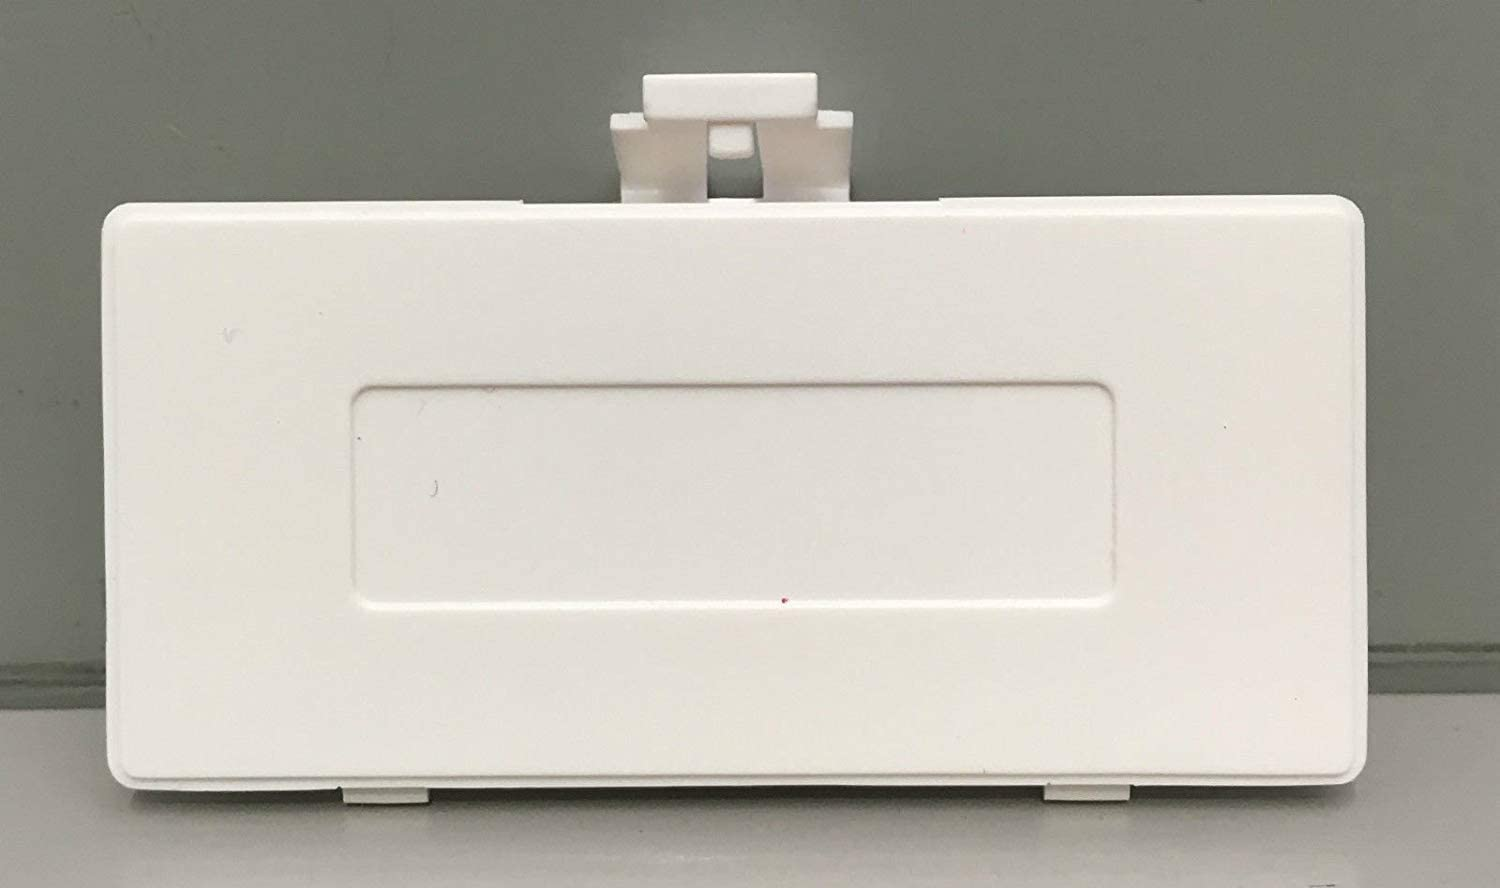 Ambertown White Battery Back Door Cover Case for Gameboy Pocket GBP Replaceme